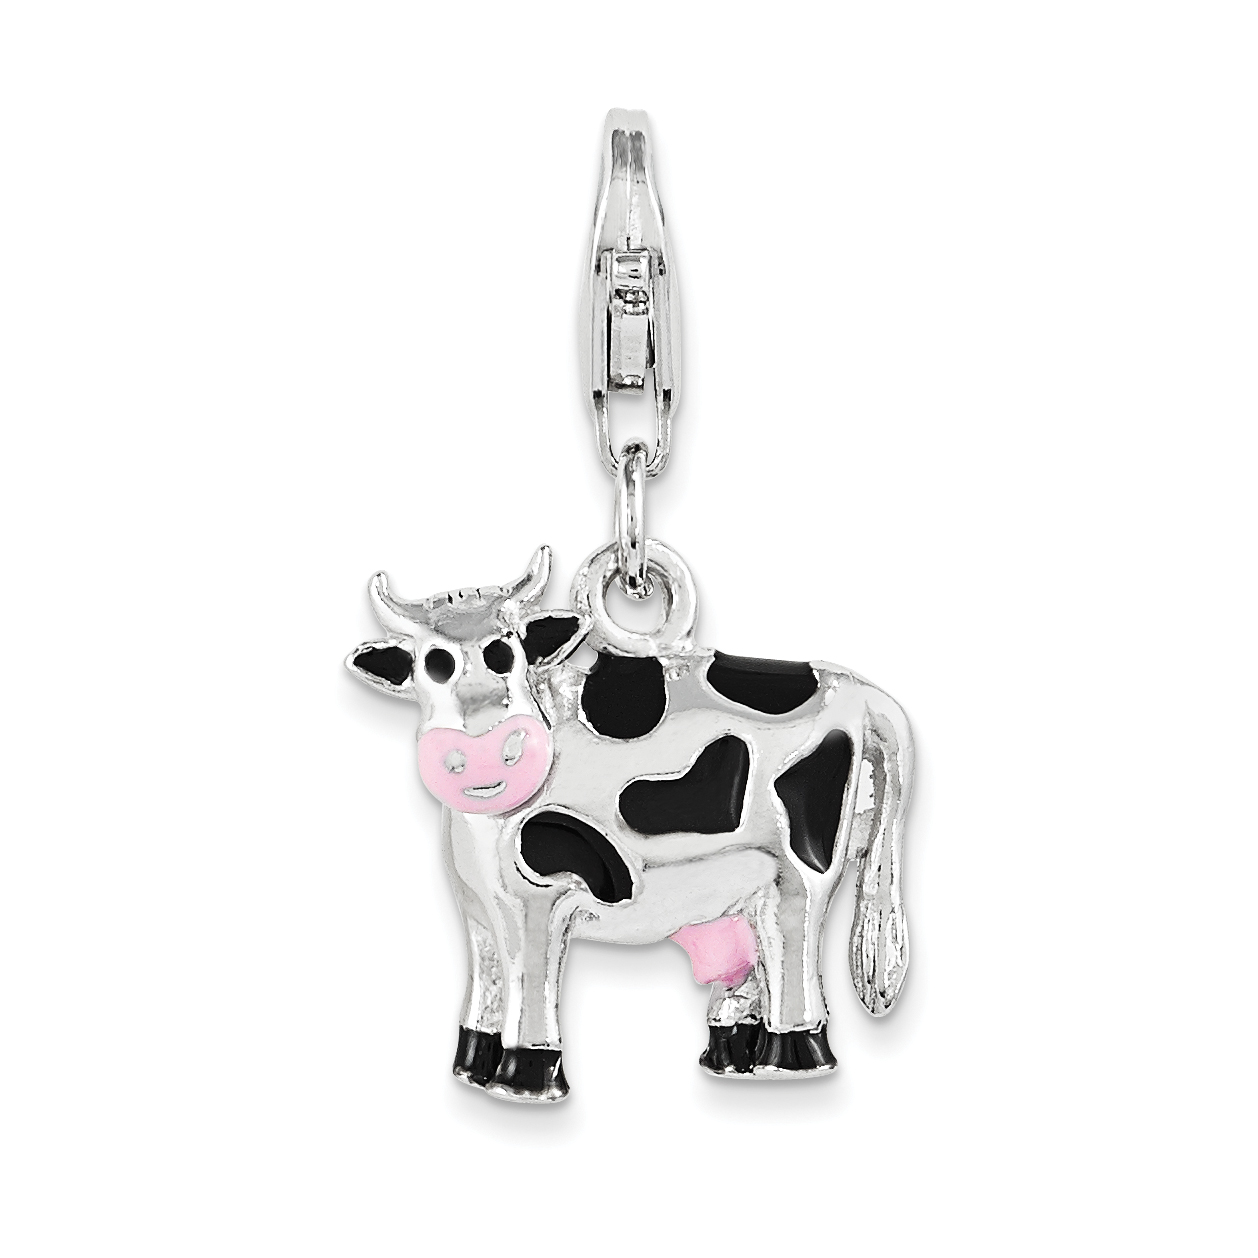 925 Sterling Silver Rhodium-plated Polished and Enameled 3D Cow Charm